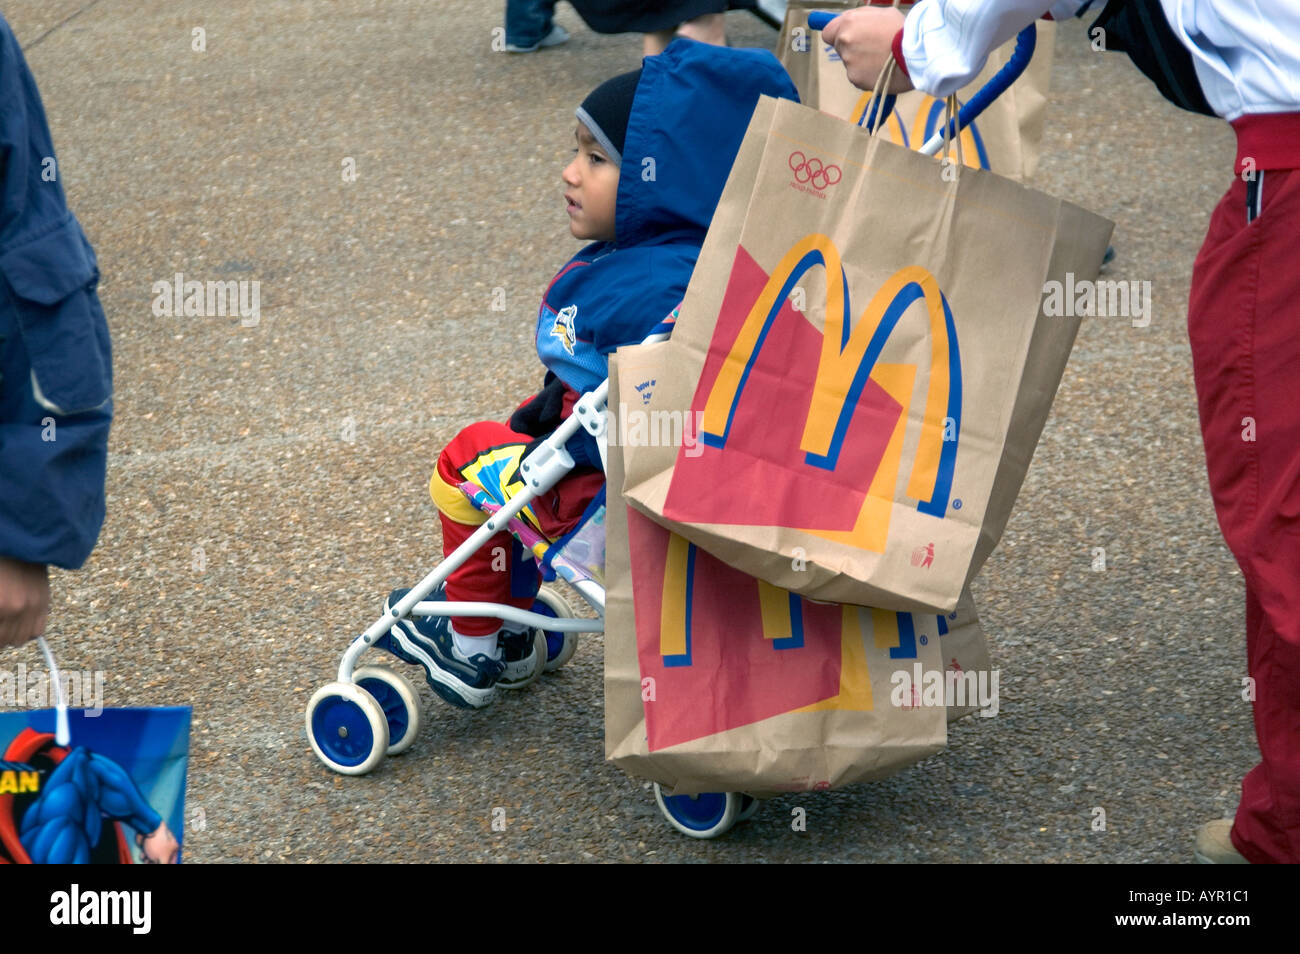 CHILD IN PUSH CHAIR WITH MC DONALD S CARRIER BAGS CHICAGO